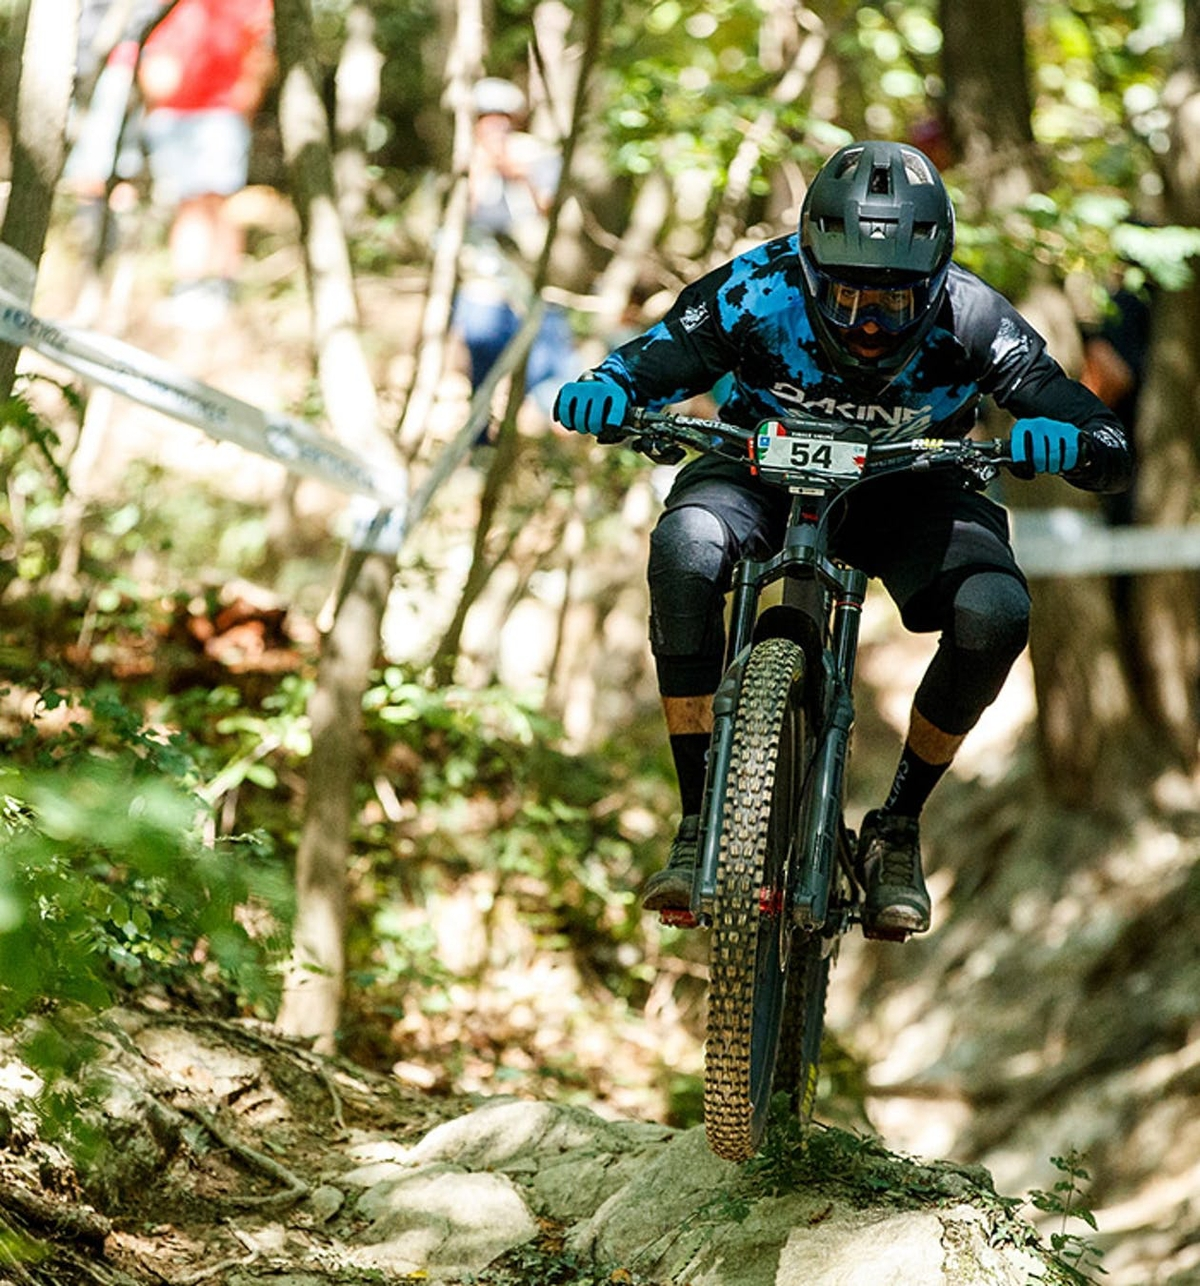 Racing the Megatower at the Enduro World Series Finale